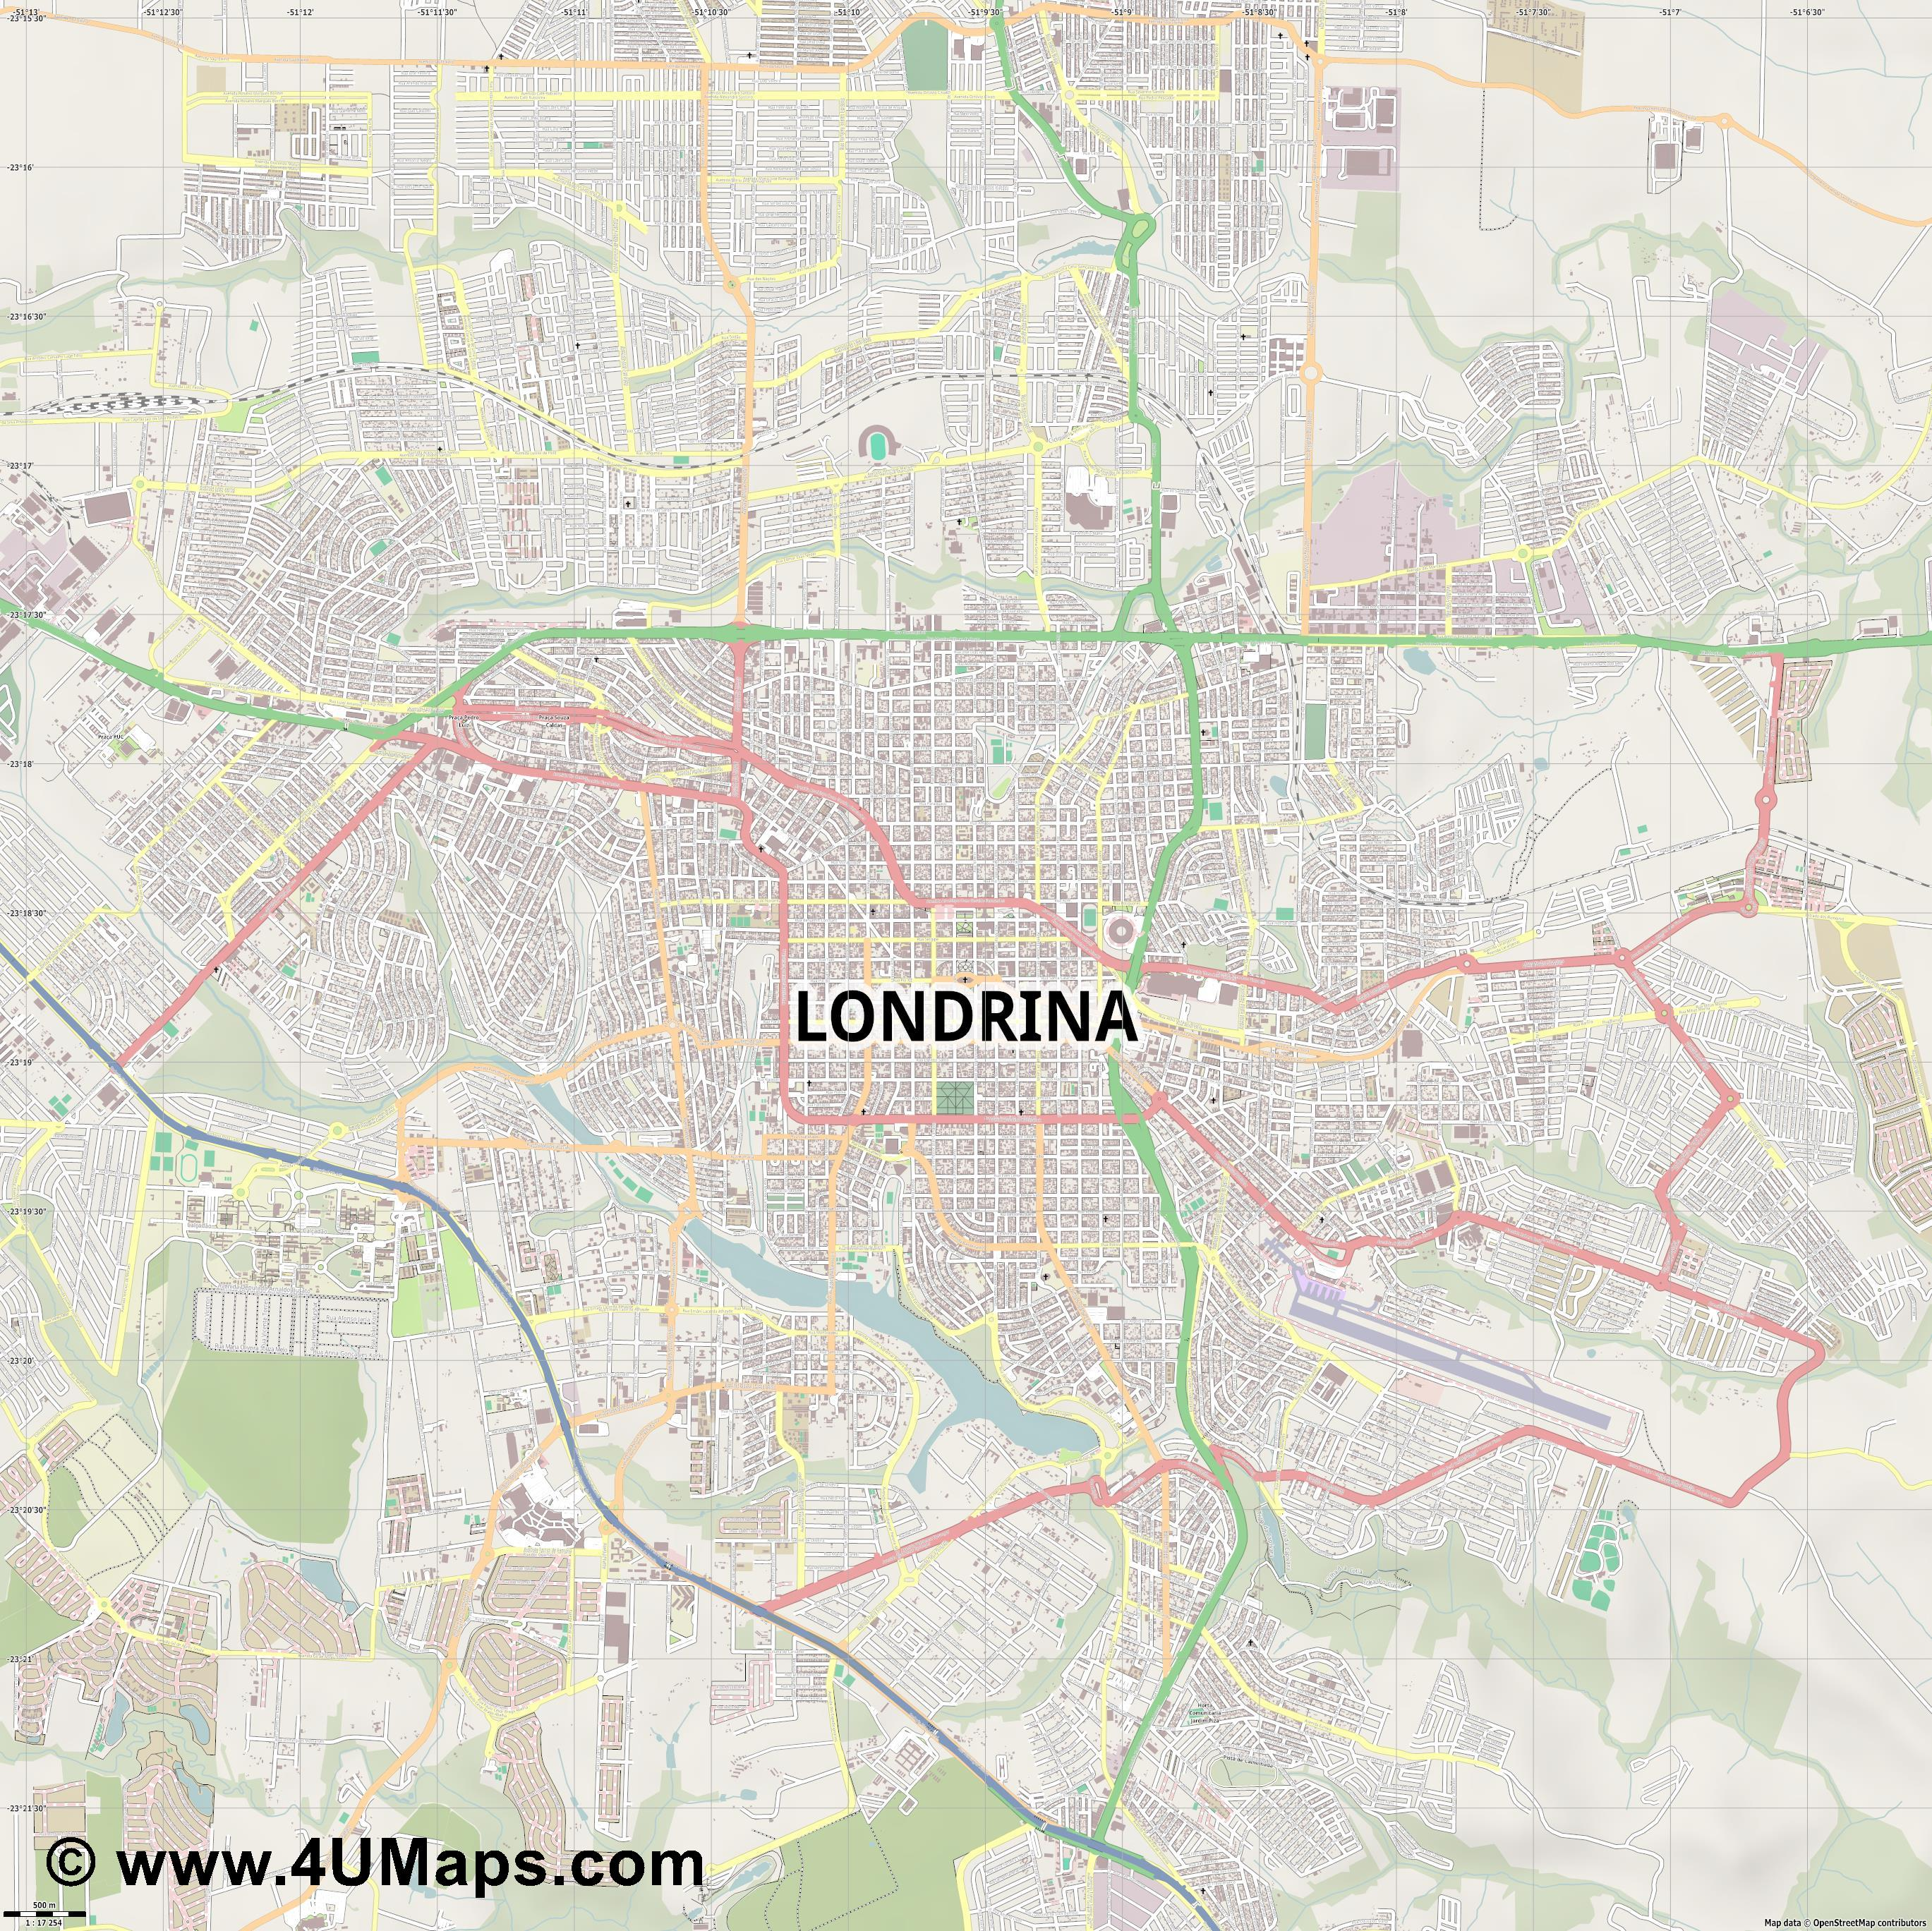 Svg Scalable Vector City Map Londrina - Londrina map